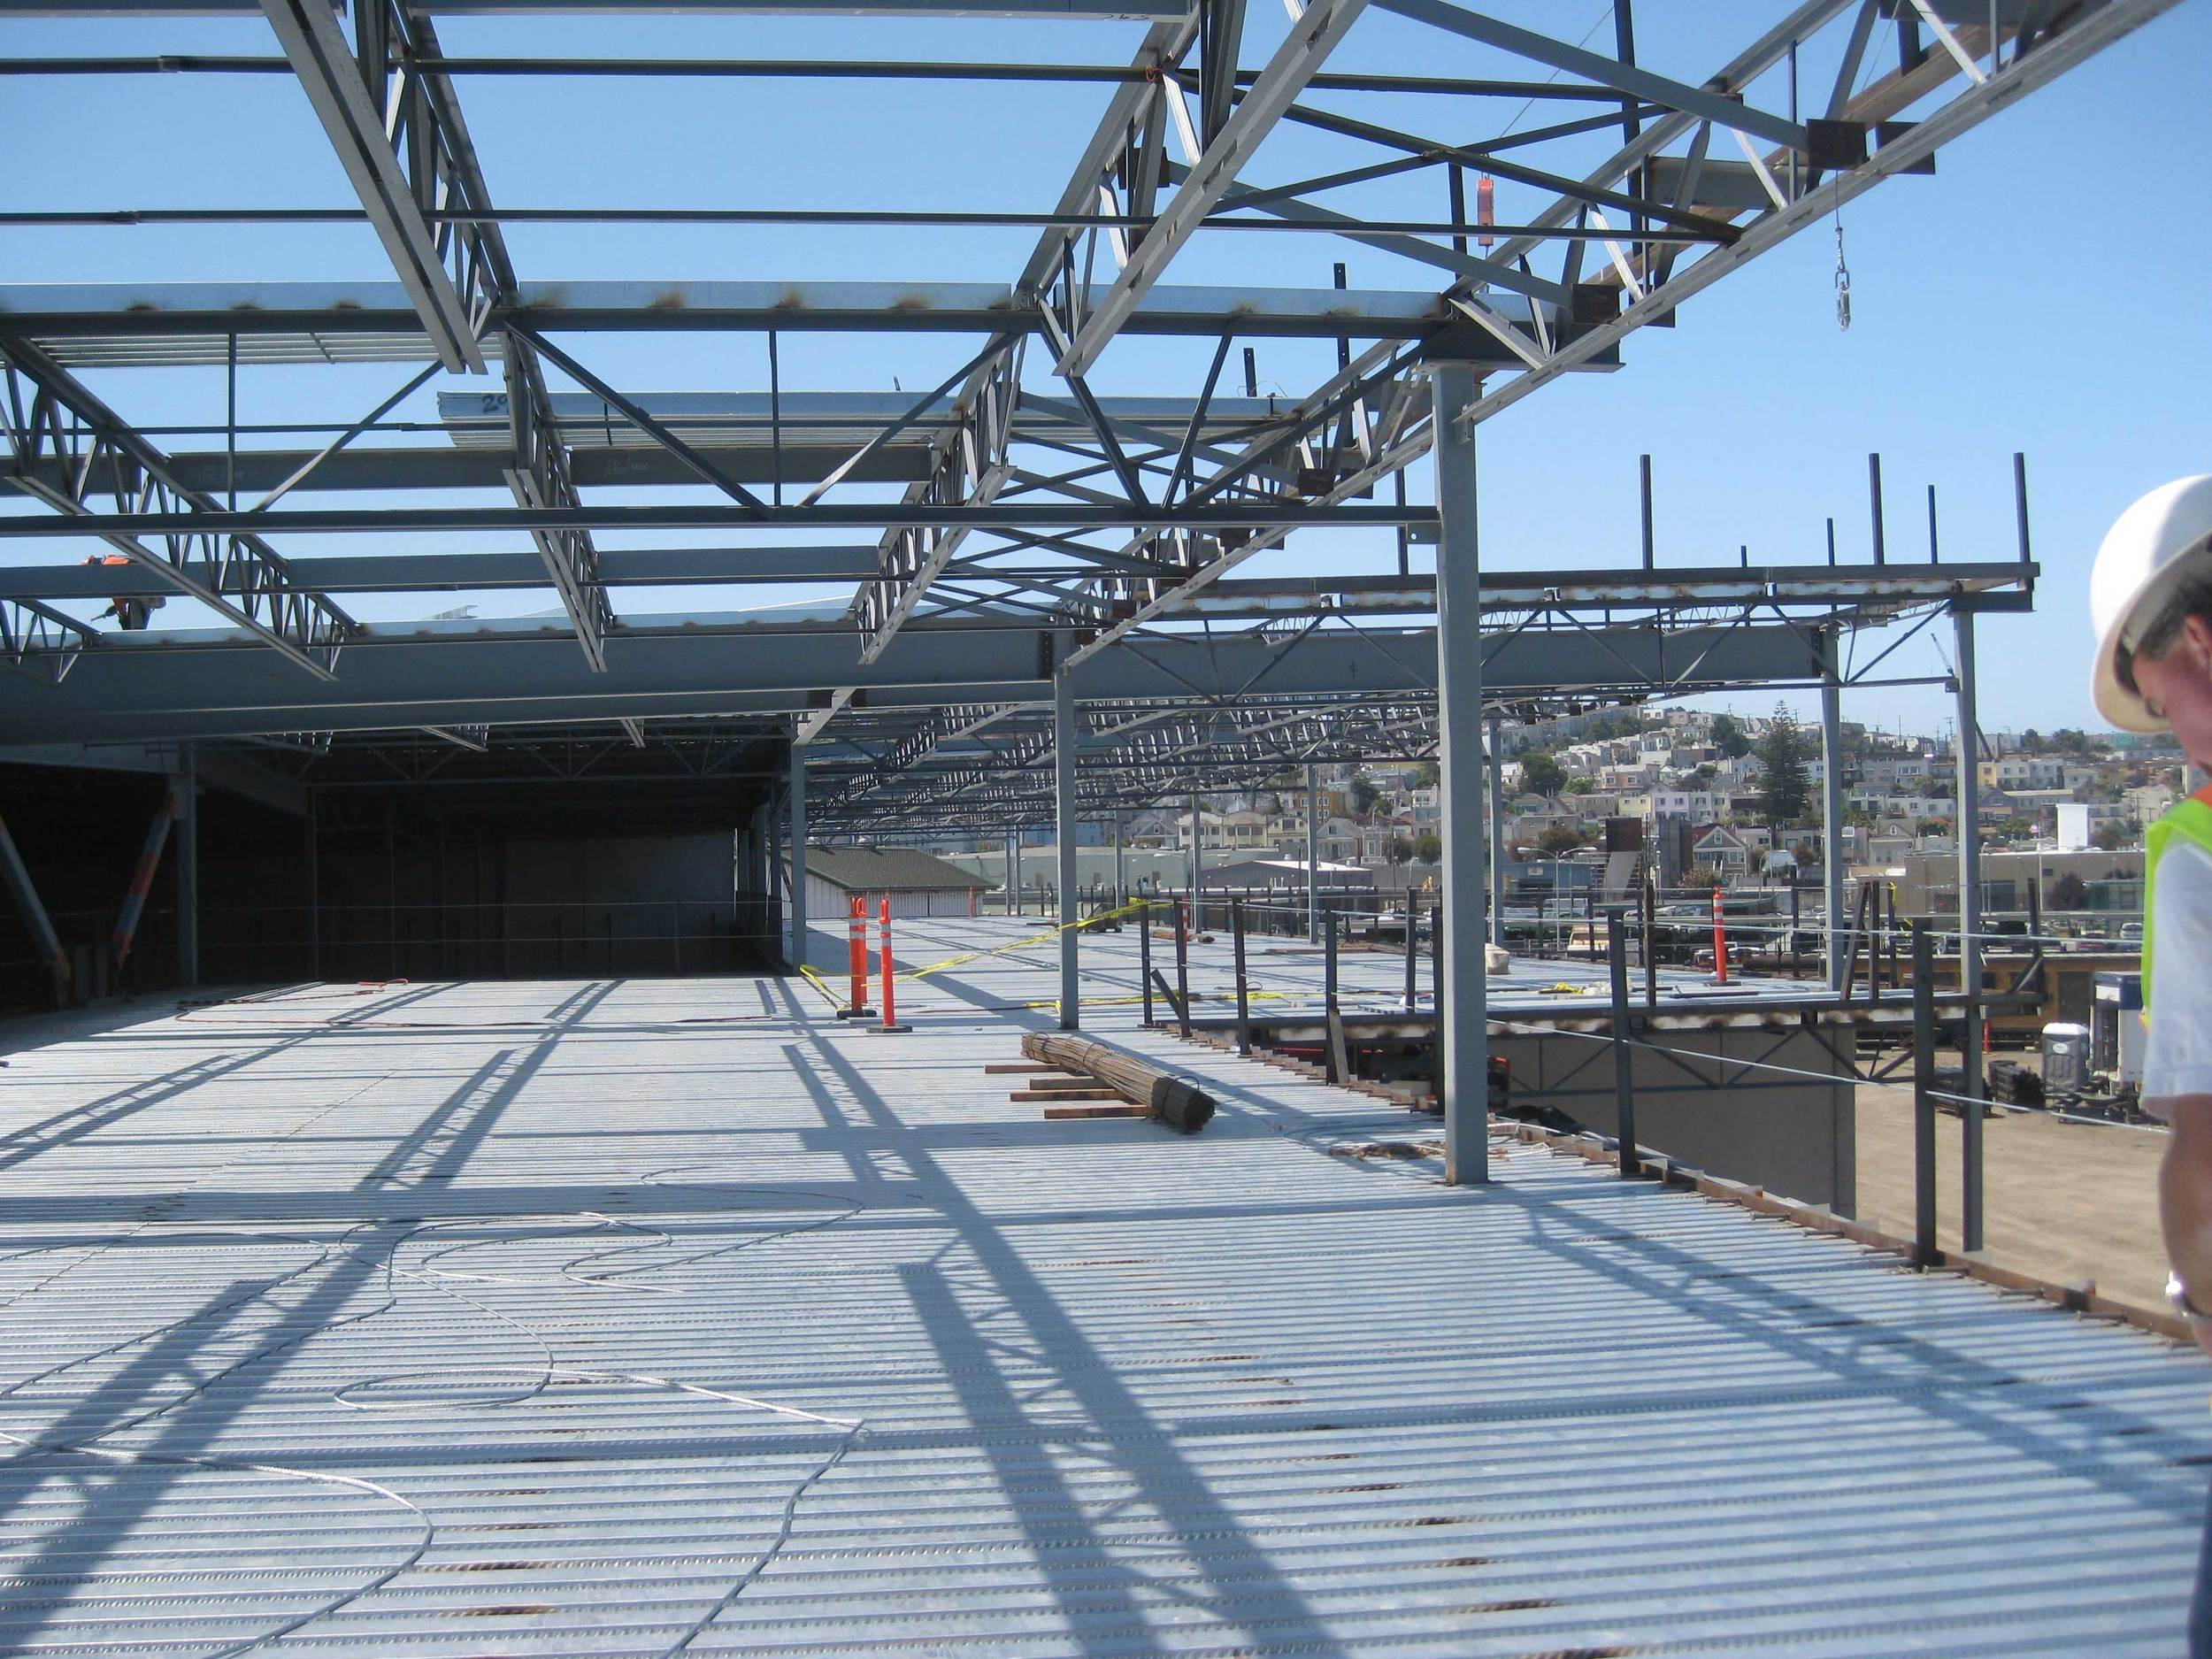 Office level structural framing